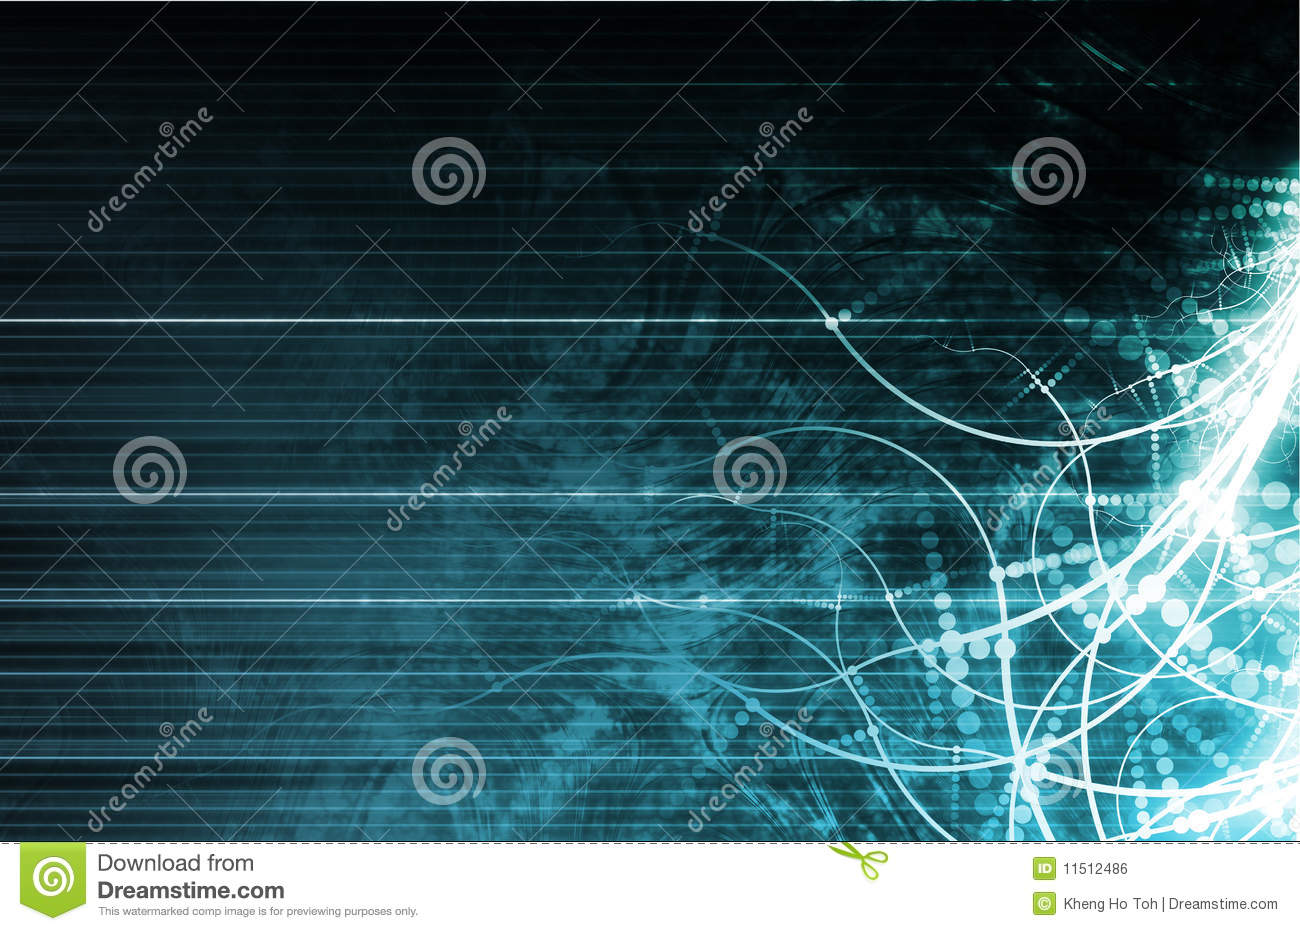 presentation background royalty free stock image image free thank you pictures clip art free thank you pictures clip art